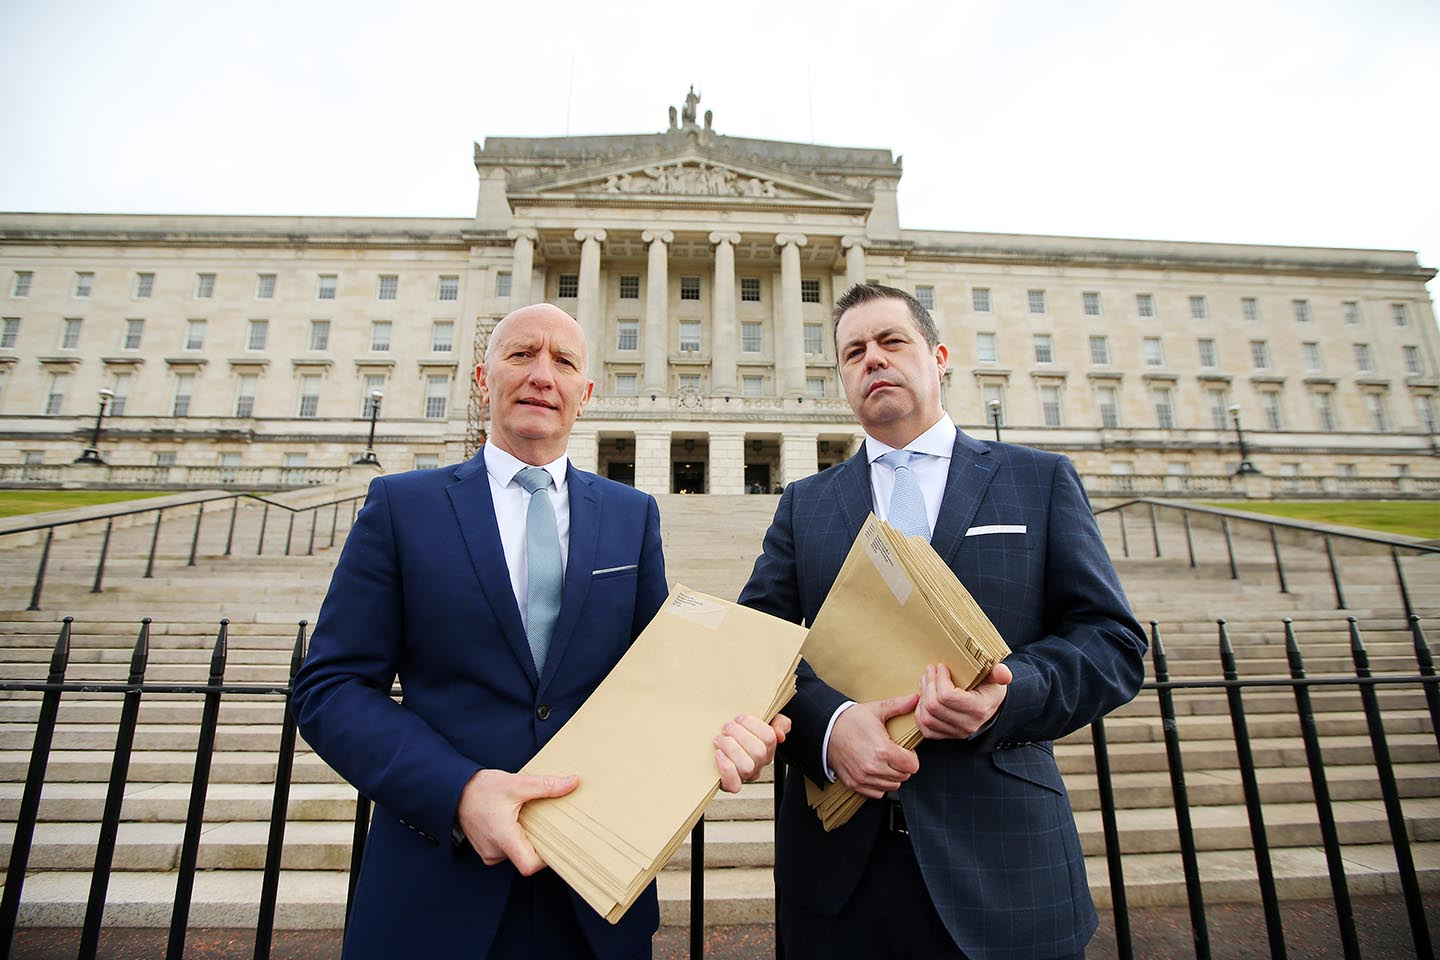 Hospitality Ulster join Business and Civic Society in an appeal to restore Devolved Government